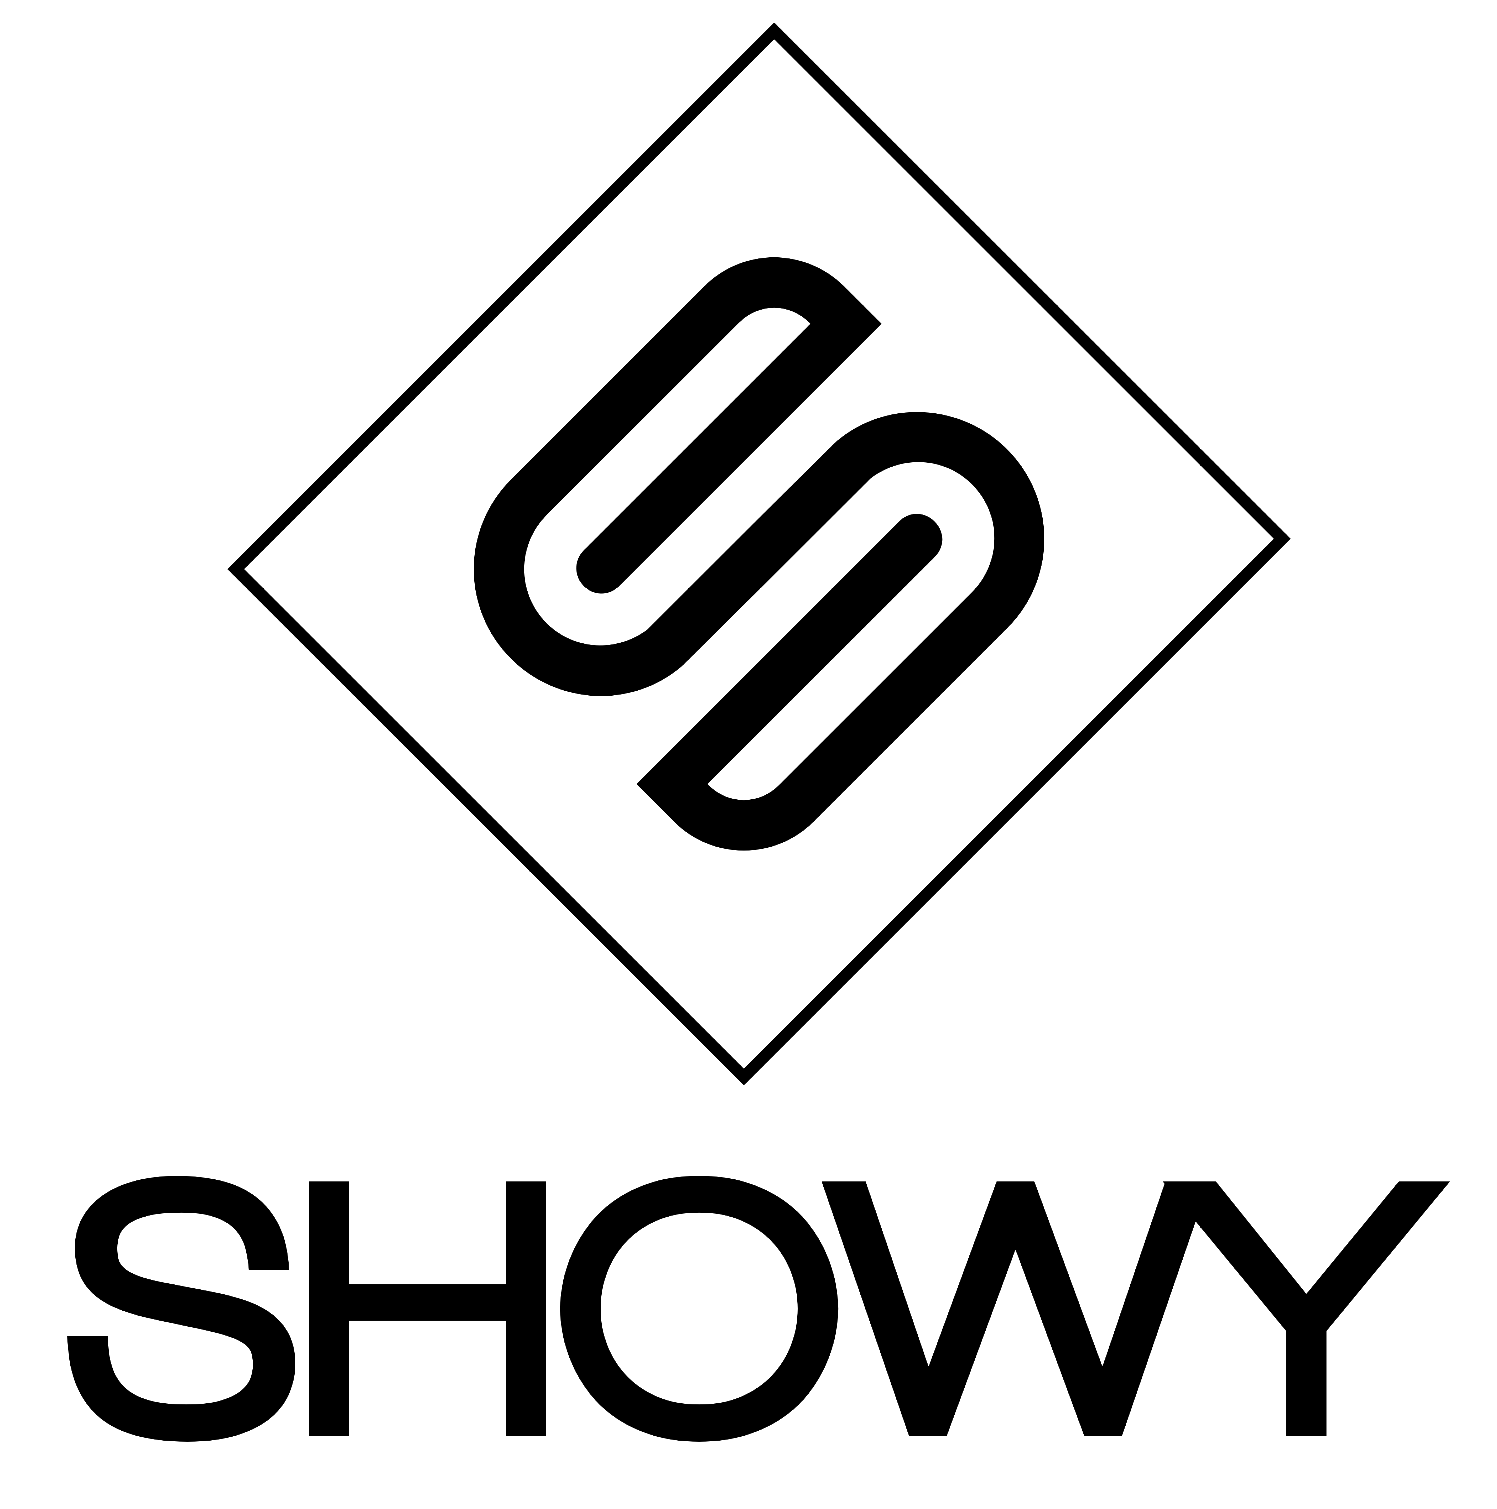 Showy Officially Announces New Business and Website Launch for February